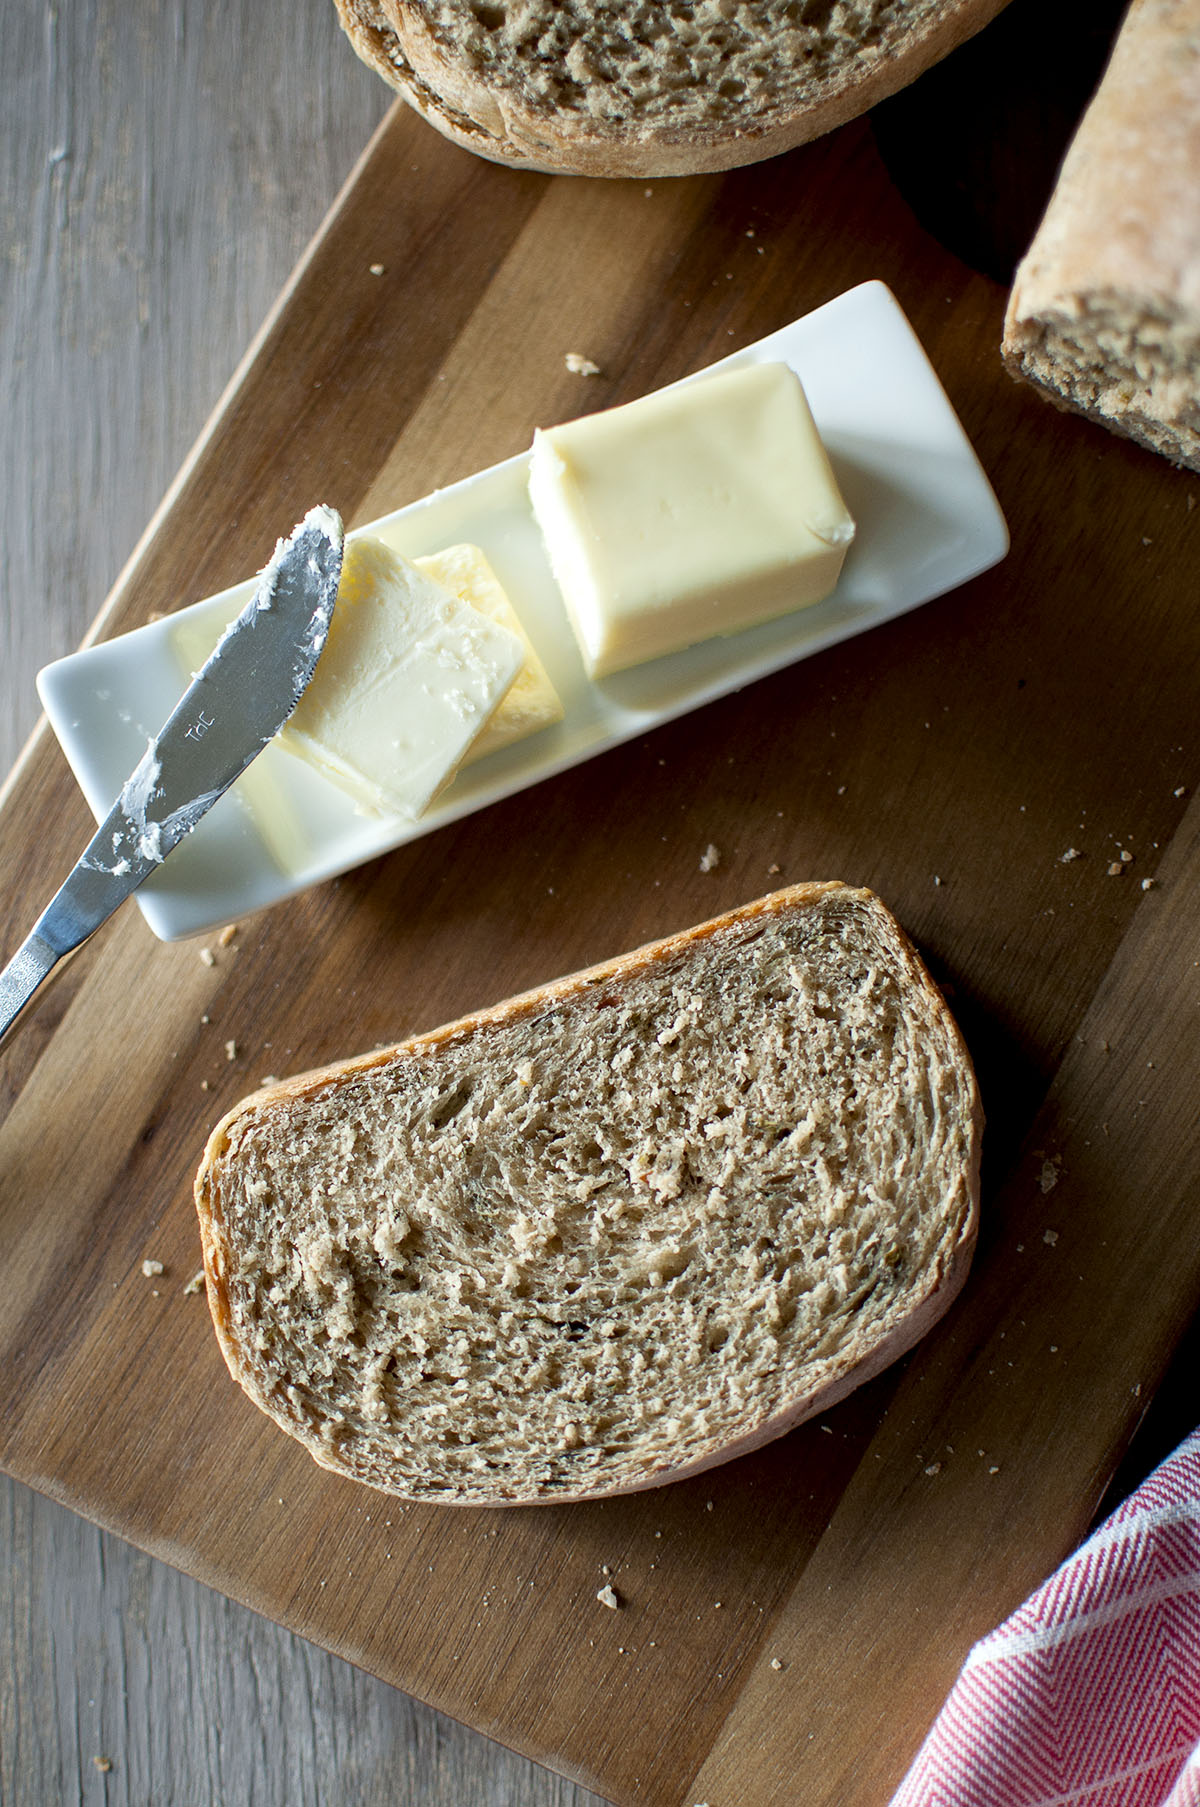 chopping board with sliced khara bread and a butter plate with butter and knife